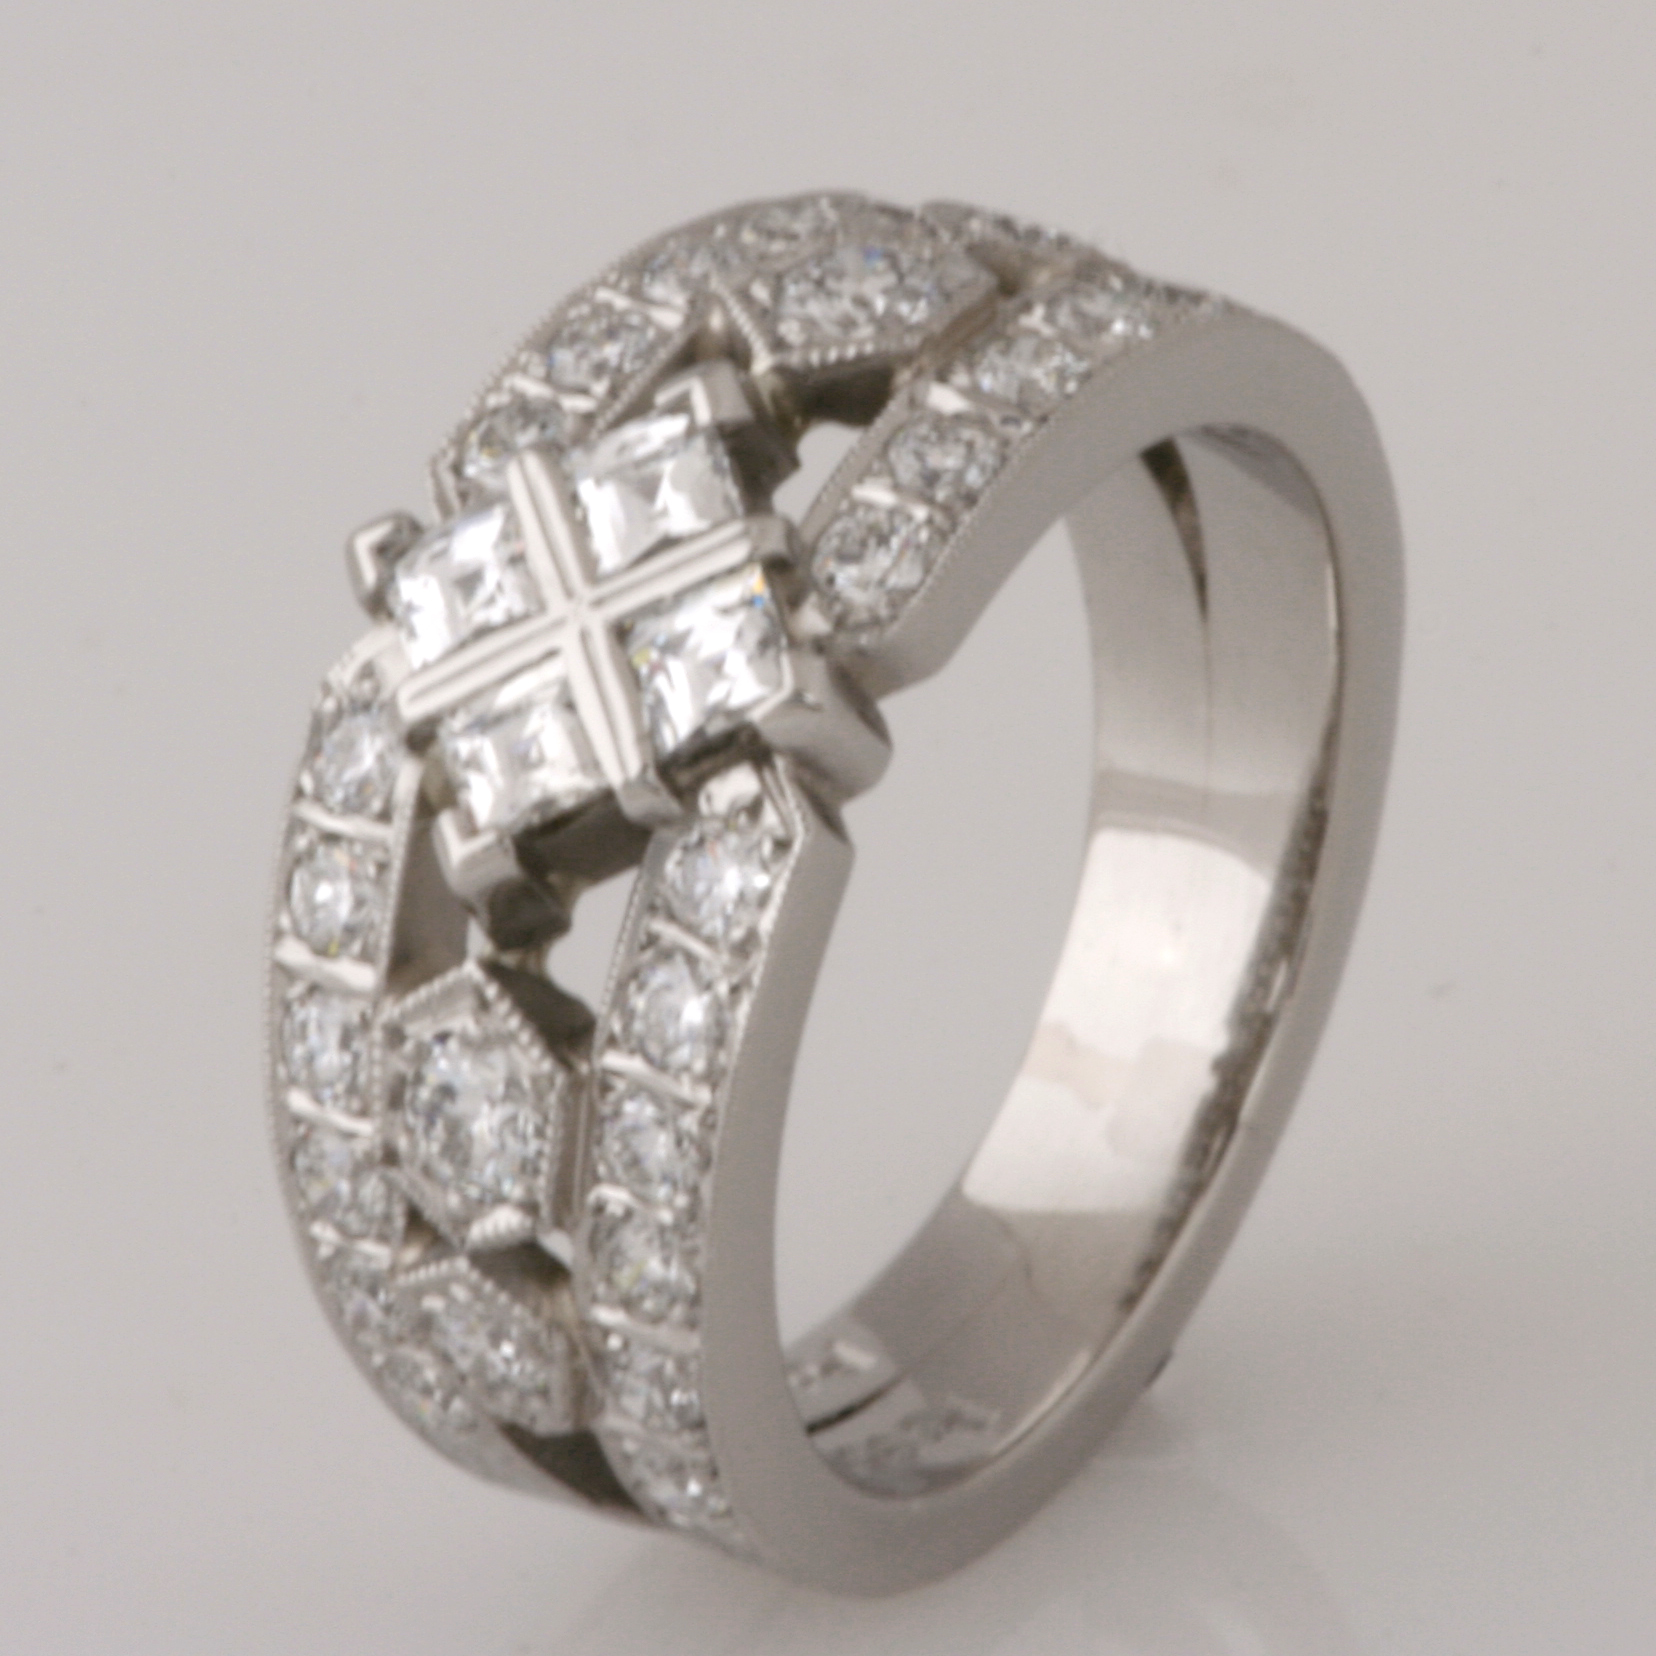 Handmade ladies palladium engagement ring with 'Tycoon' cut diamonds and brilliant cut diamonds